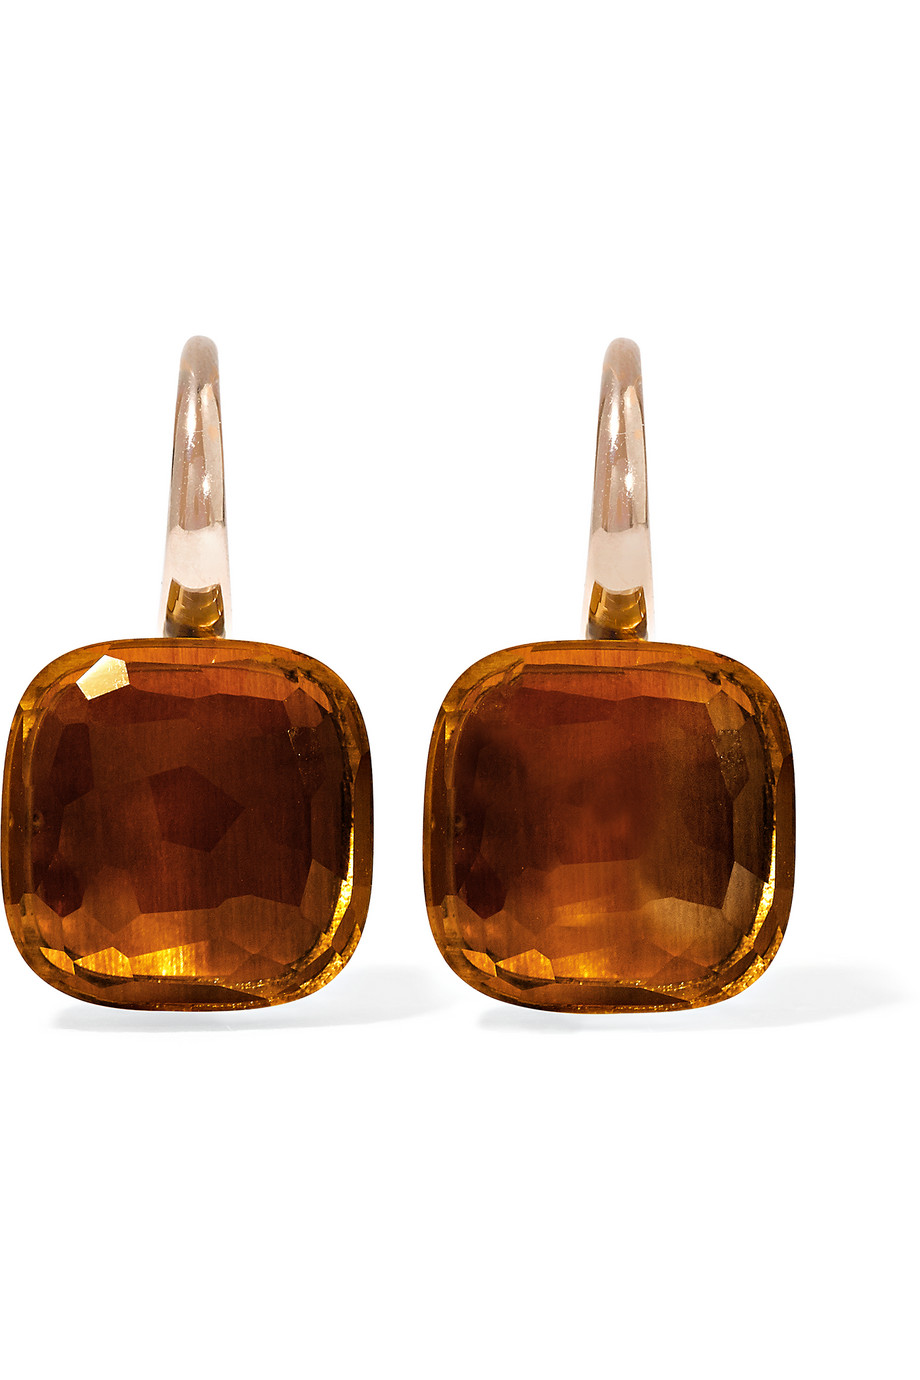 Nudo Classic 18-Karat Rose Gold Quartz Earrings, Rose Gold/Orange, Women's